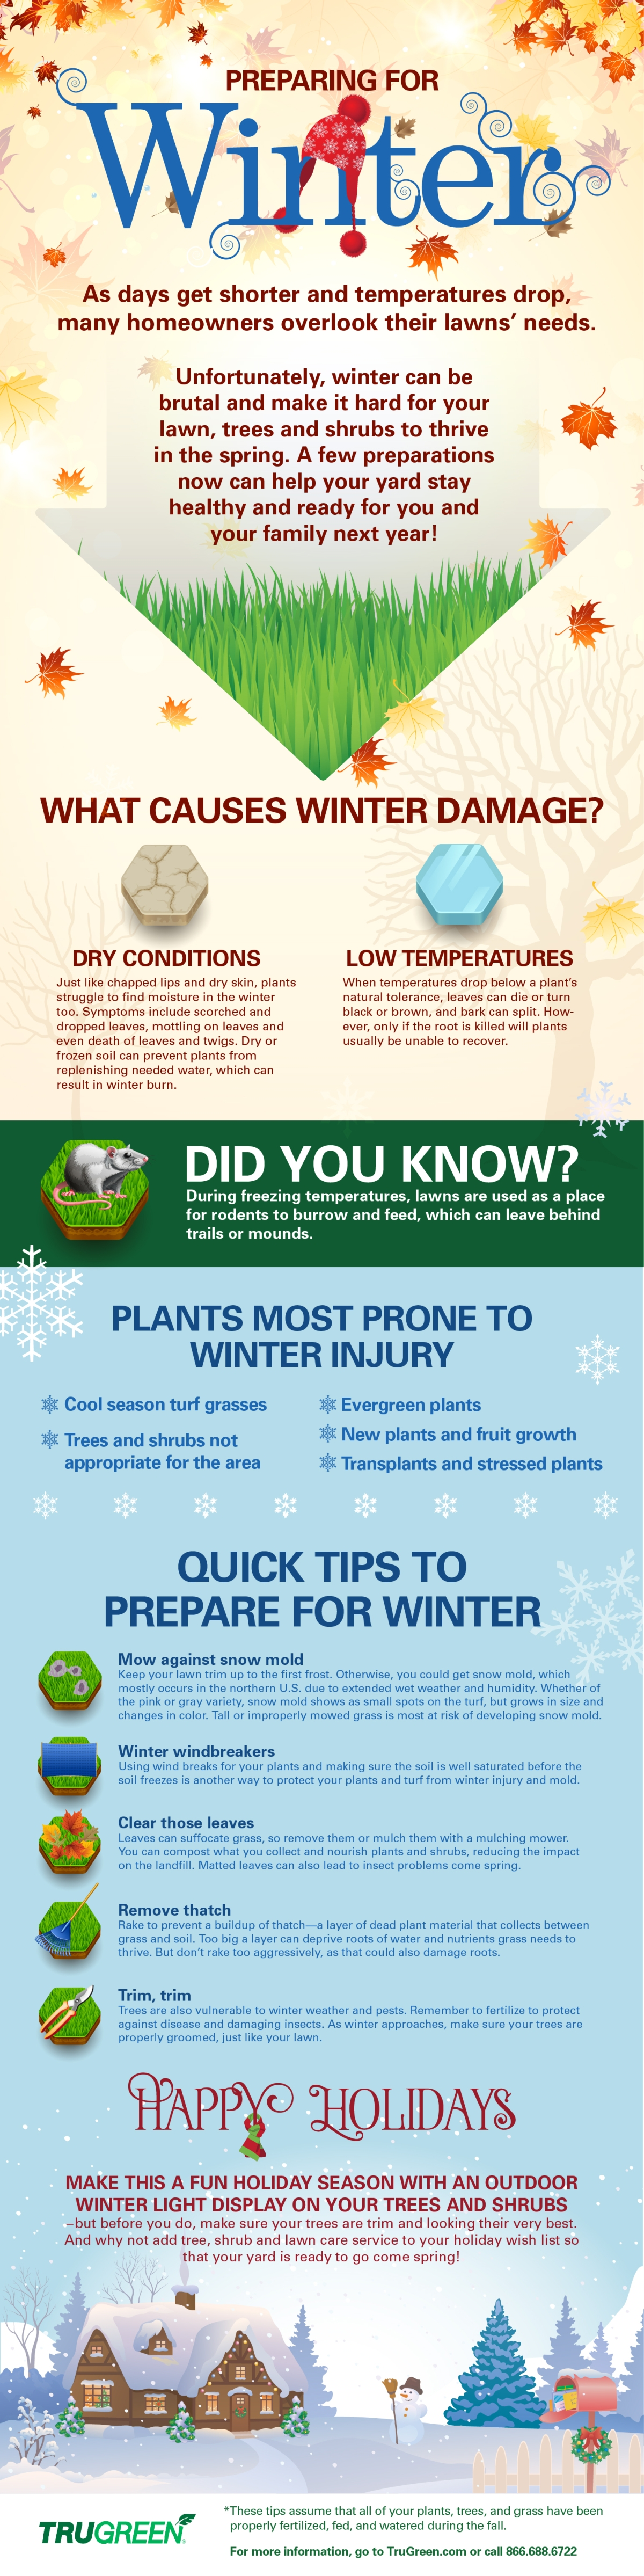 TruGreen Winter Lawn Care Tips